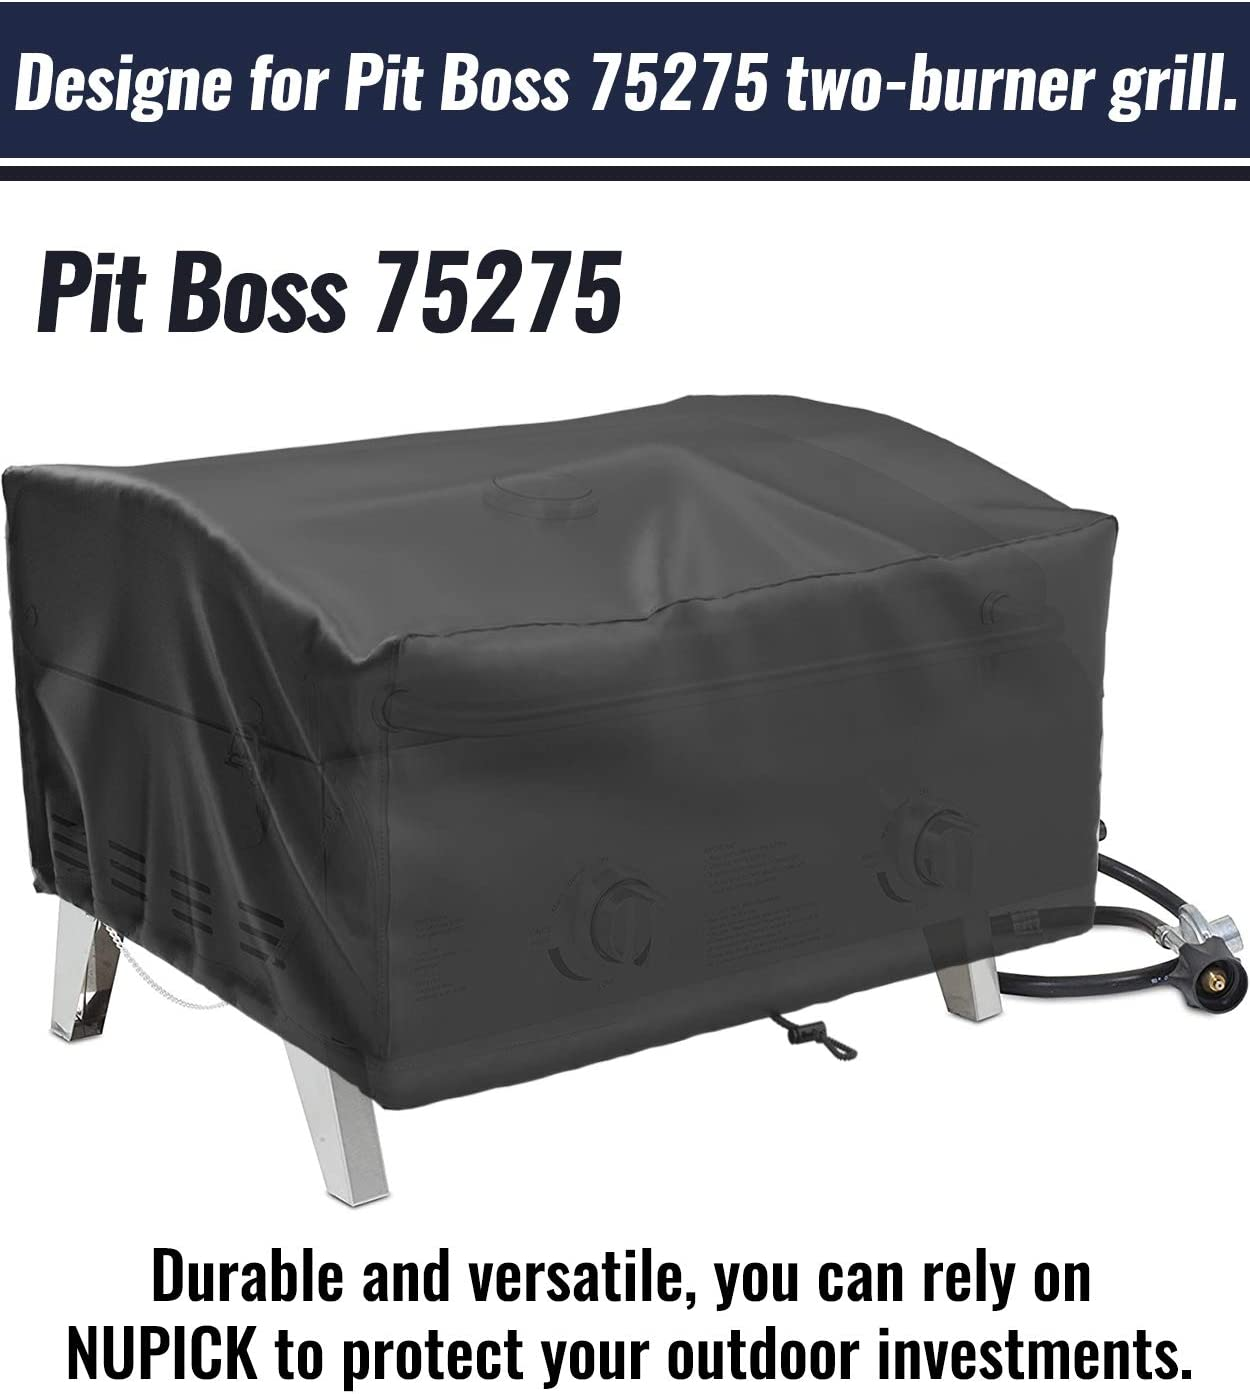 NUPICK Table Top Grill Cover for Pit Boss 75275 Stainless Steel Two-Burner Portable Grill Come with Grill Brush 24 Inch Small Grill Cover for Most 2 Burner Portable Grill